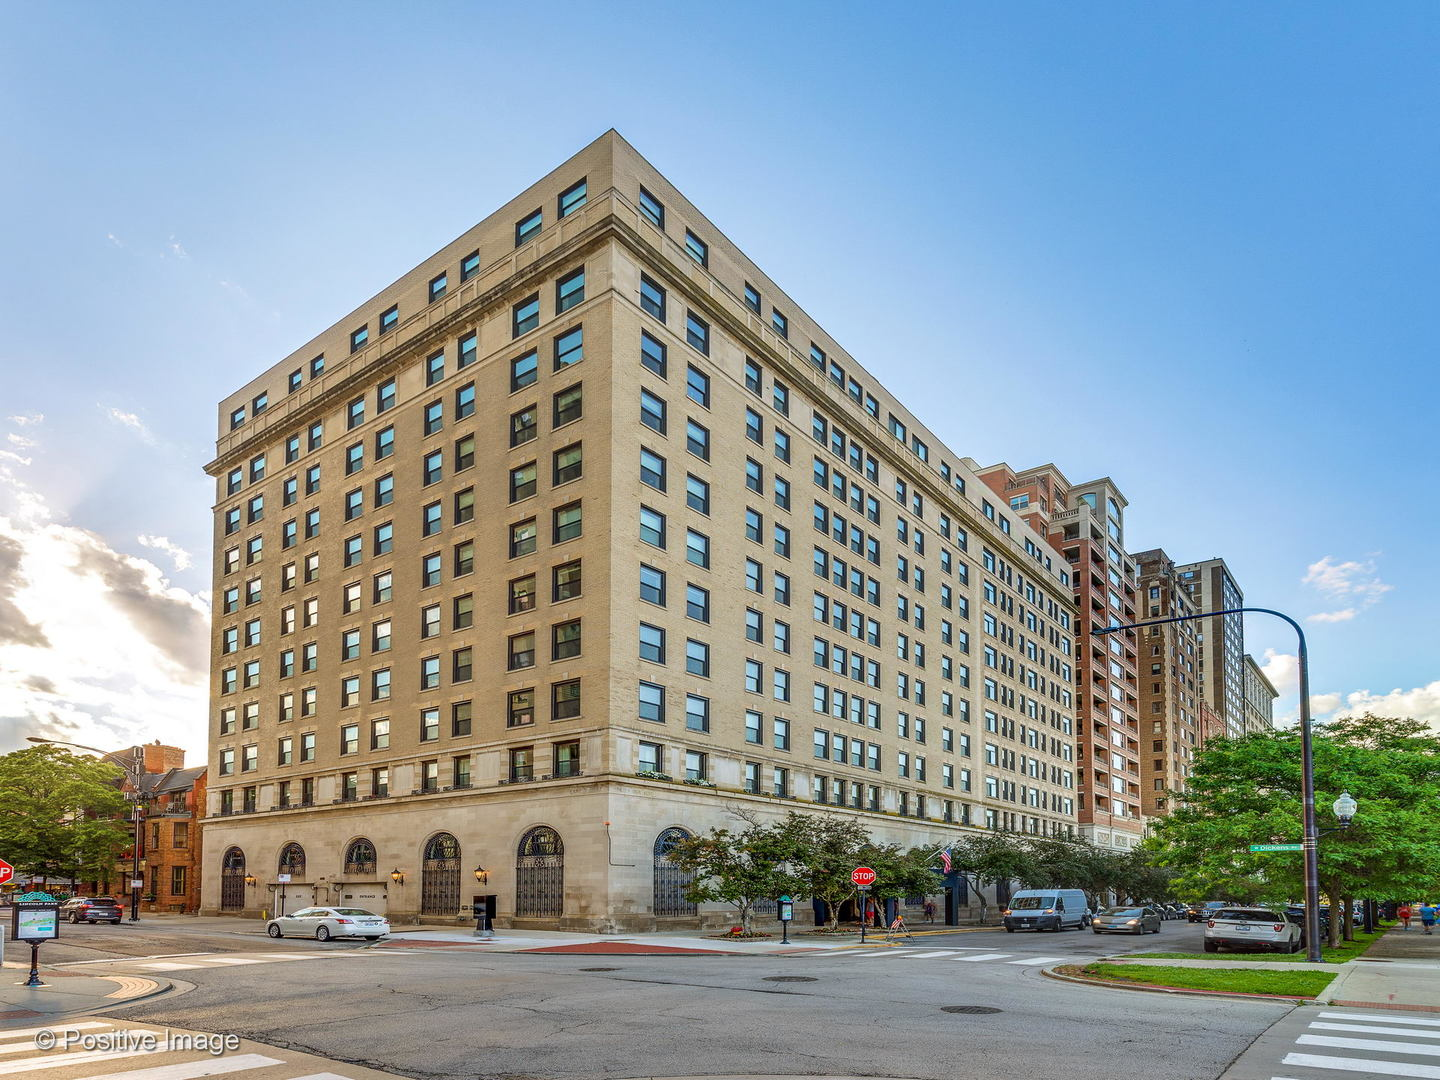 2100 N LINCOLN PARK WEST 6AS, CHICAGO, Illinois 60614